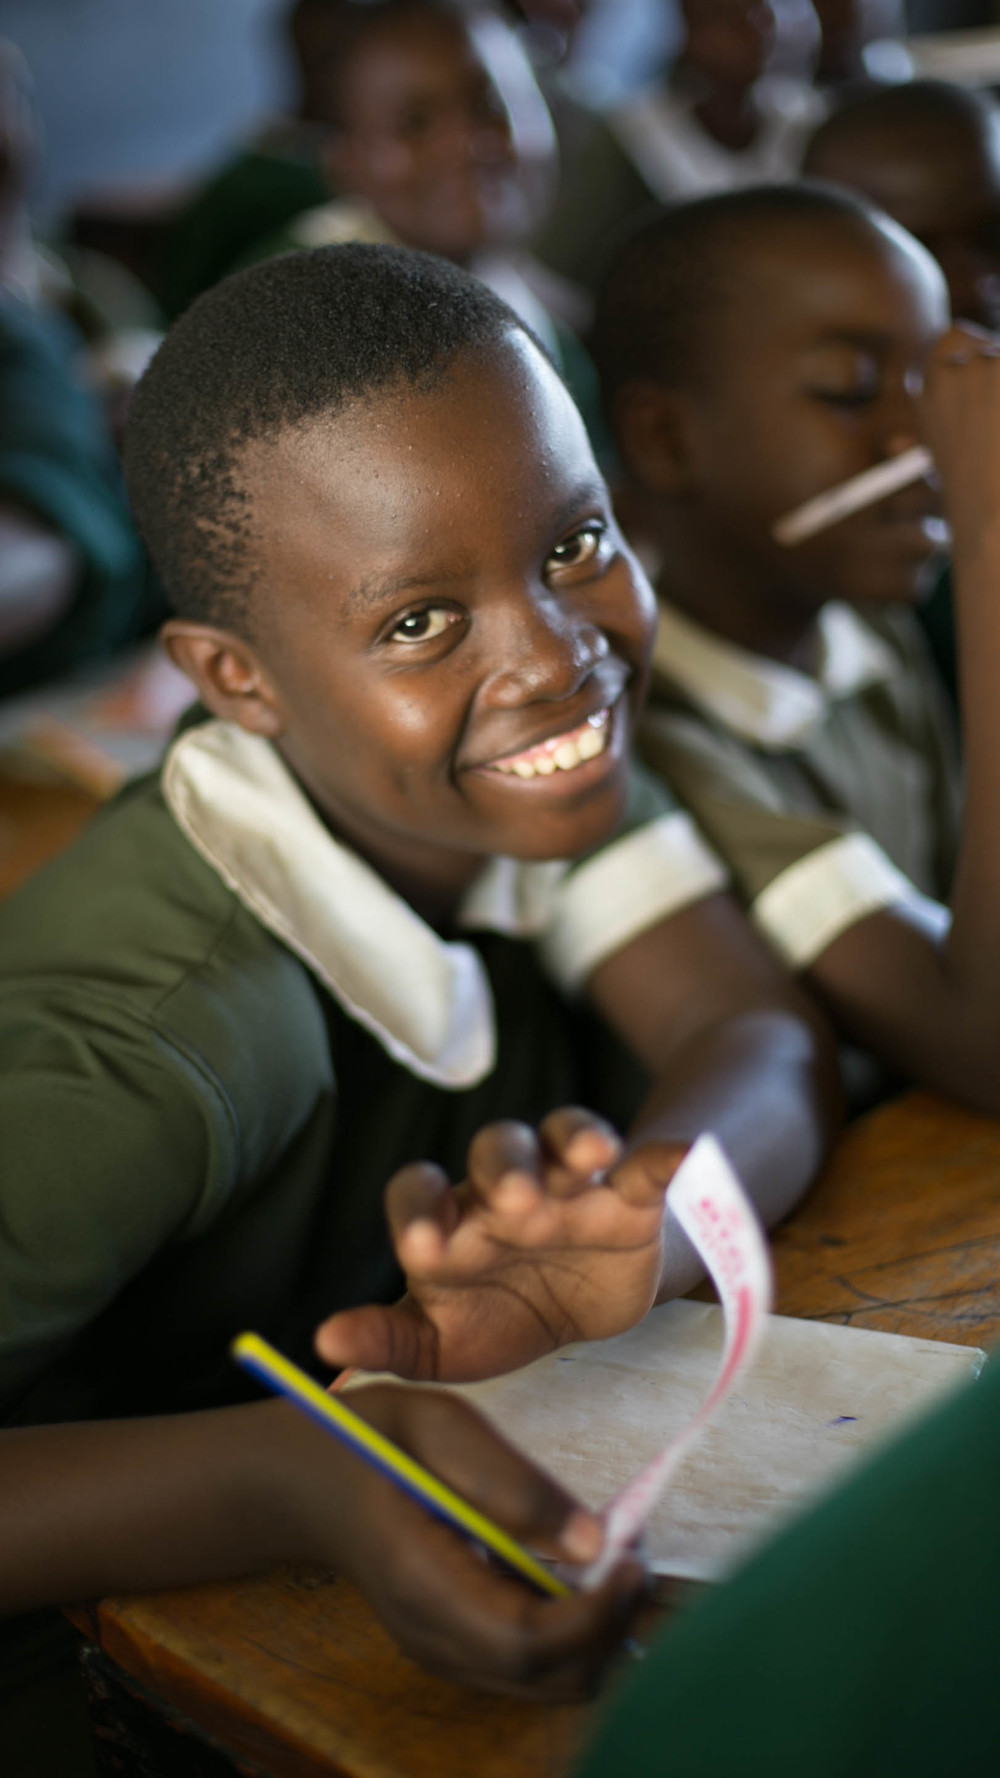 """I am so happy and thankful to receive sanitary pads that made me feel precious. I felt as if I had been given millions of dollars. I will be forever grateful because I can achieve my potential."" - Wambui, Class 8"